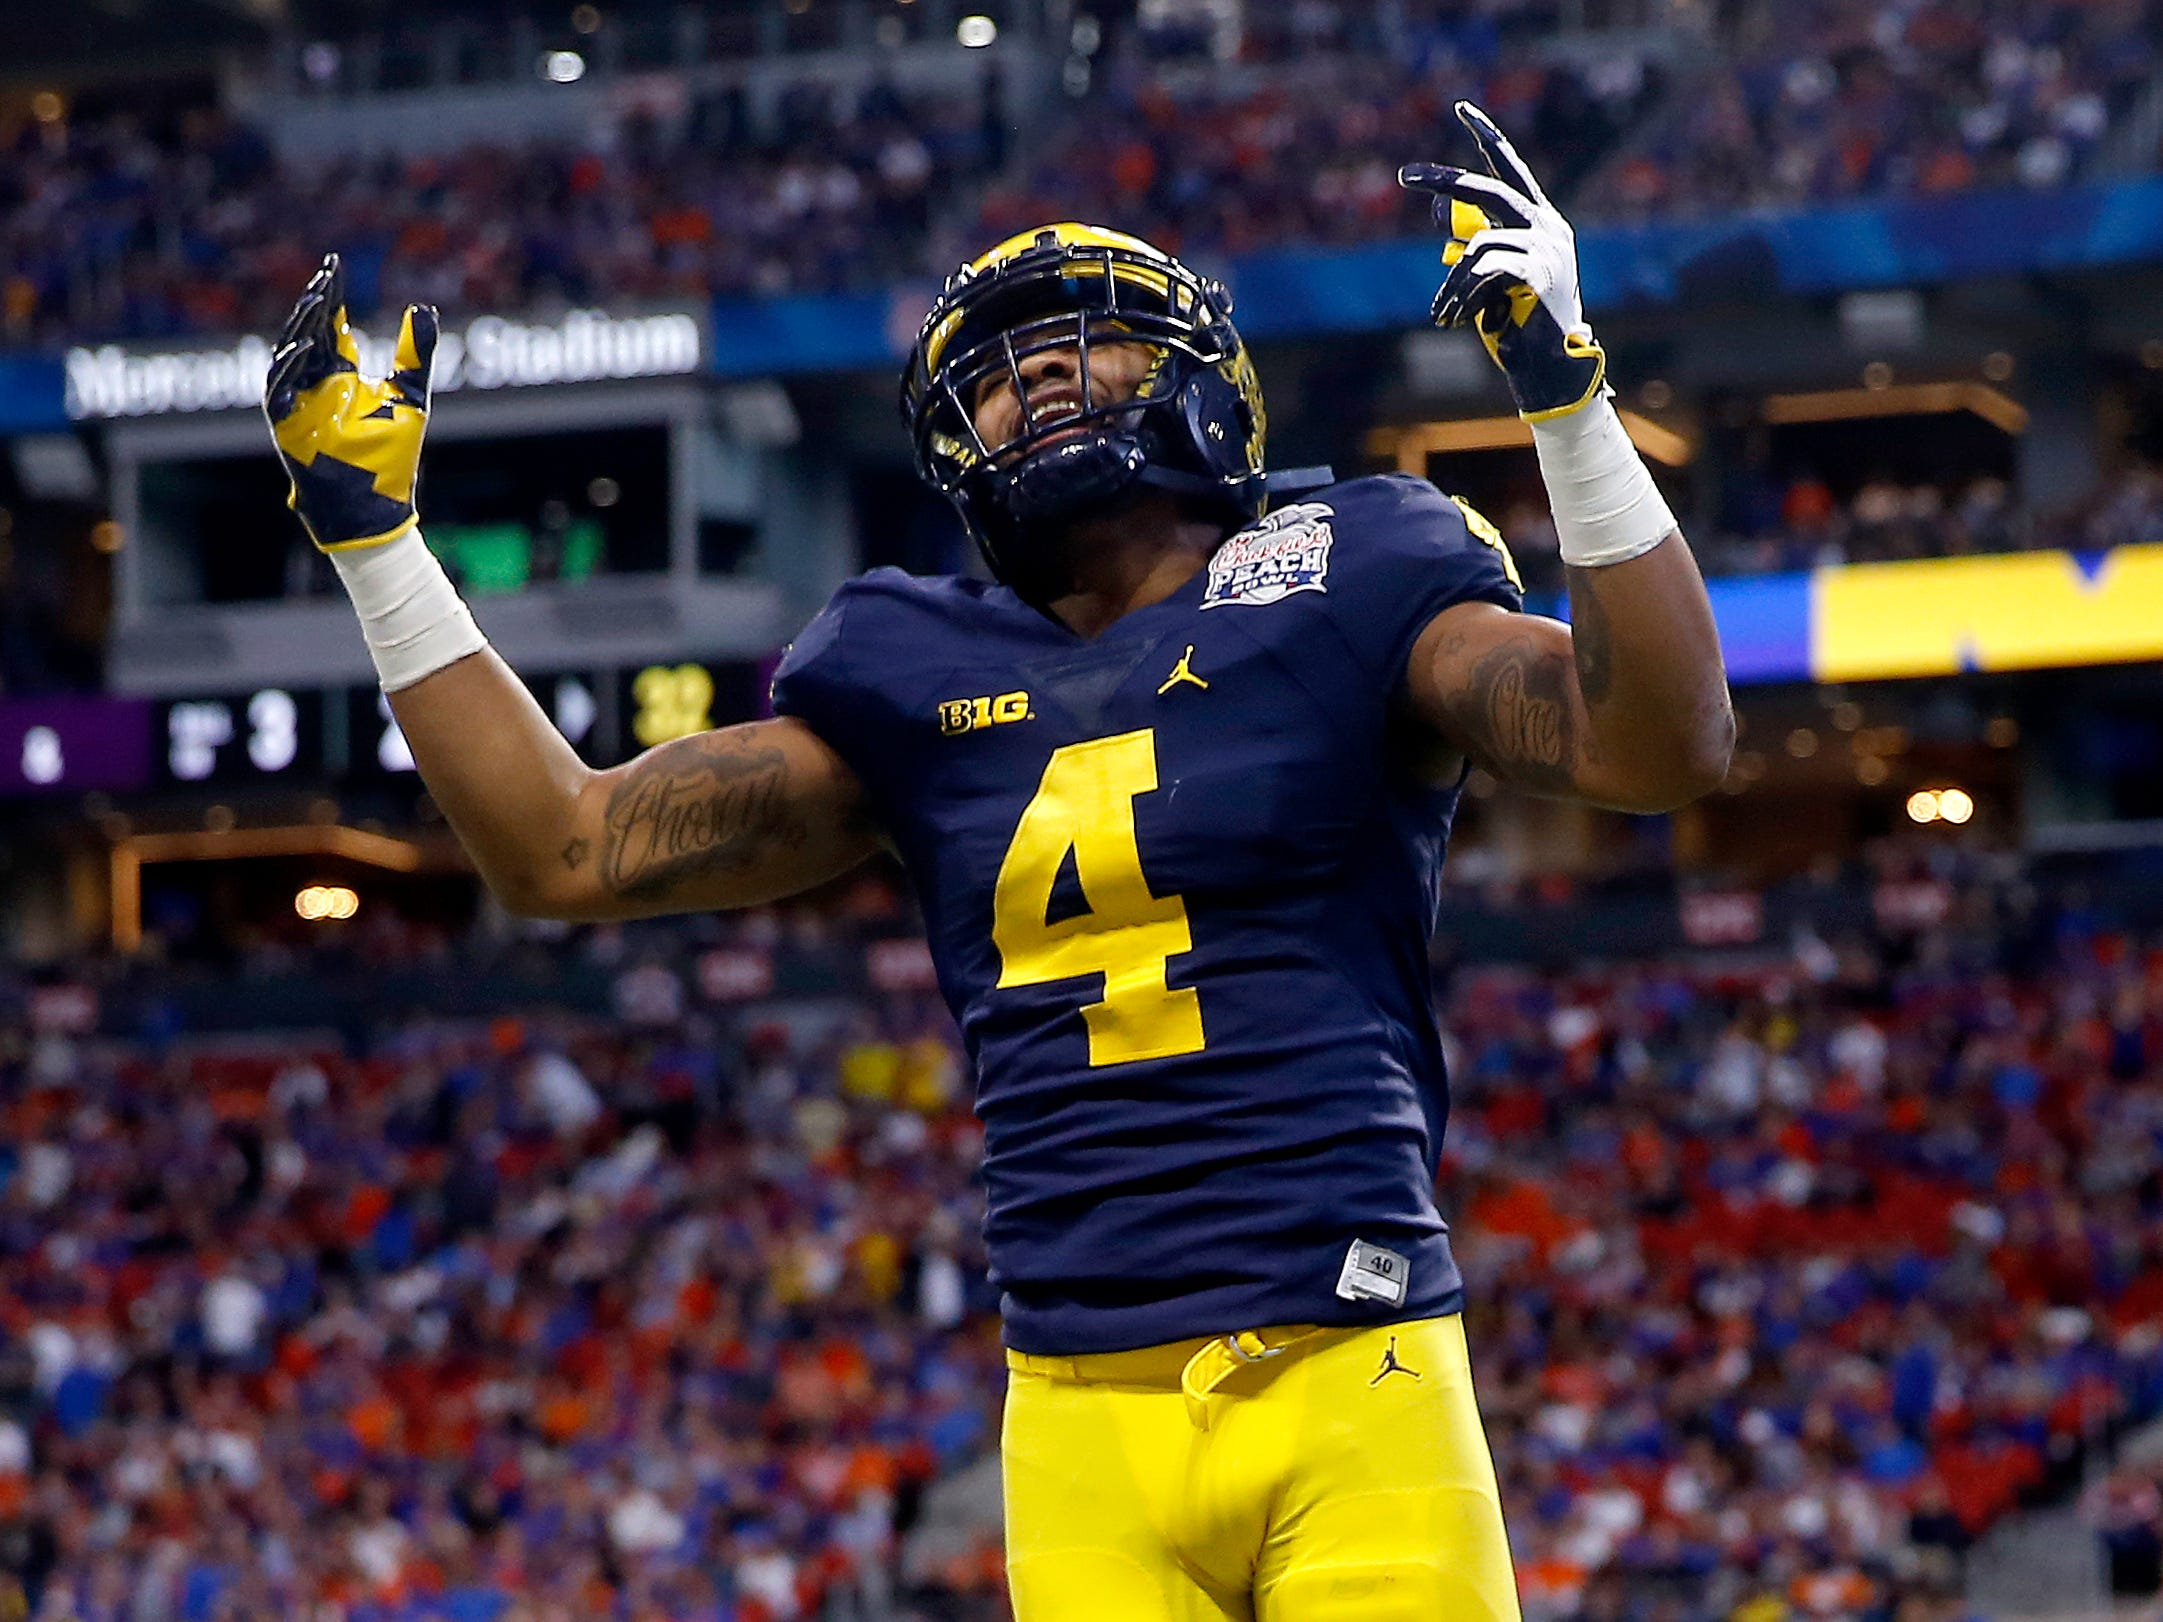 Michigan wide receiver Nico Collins celebrates a touchdown by teammate Donovan Peoples-Jones against Florida during the Peach Bowl on Saturday, Dec. 29, 2018, in Atlanta.